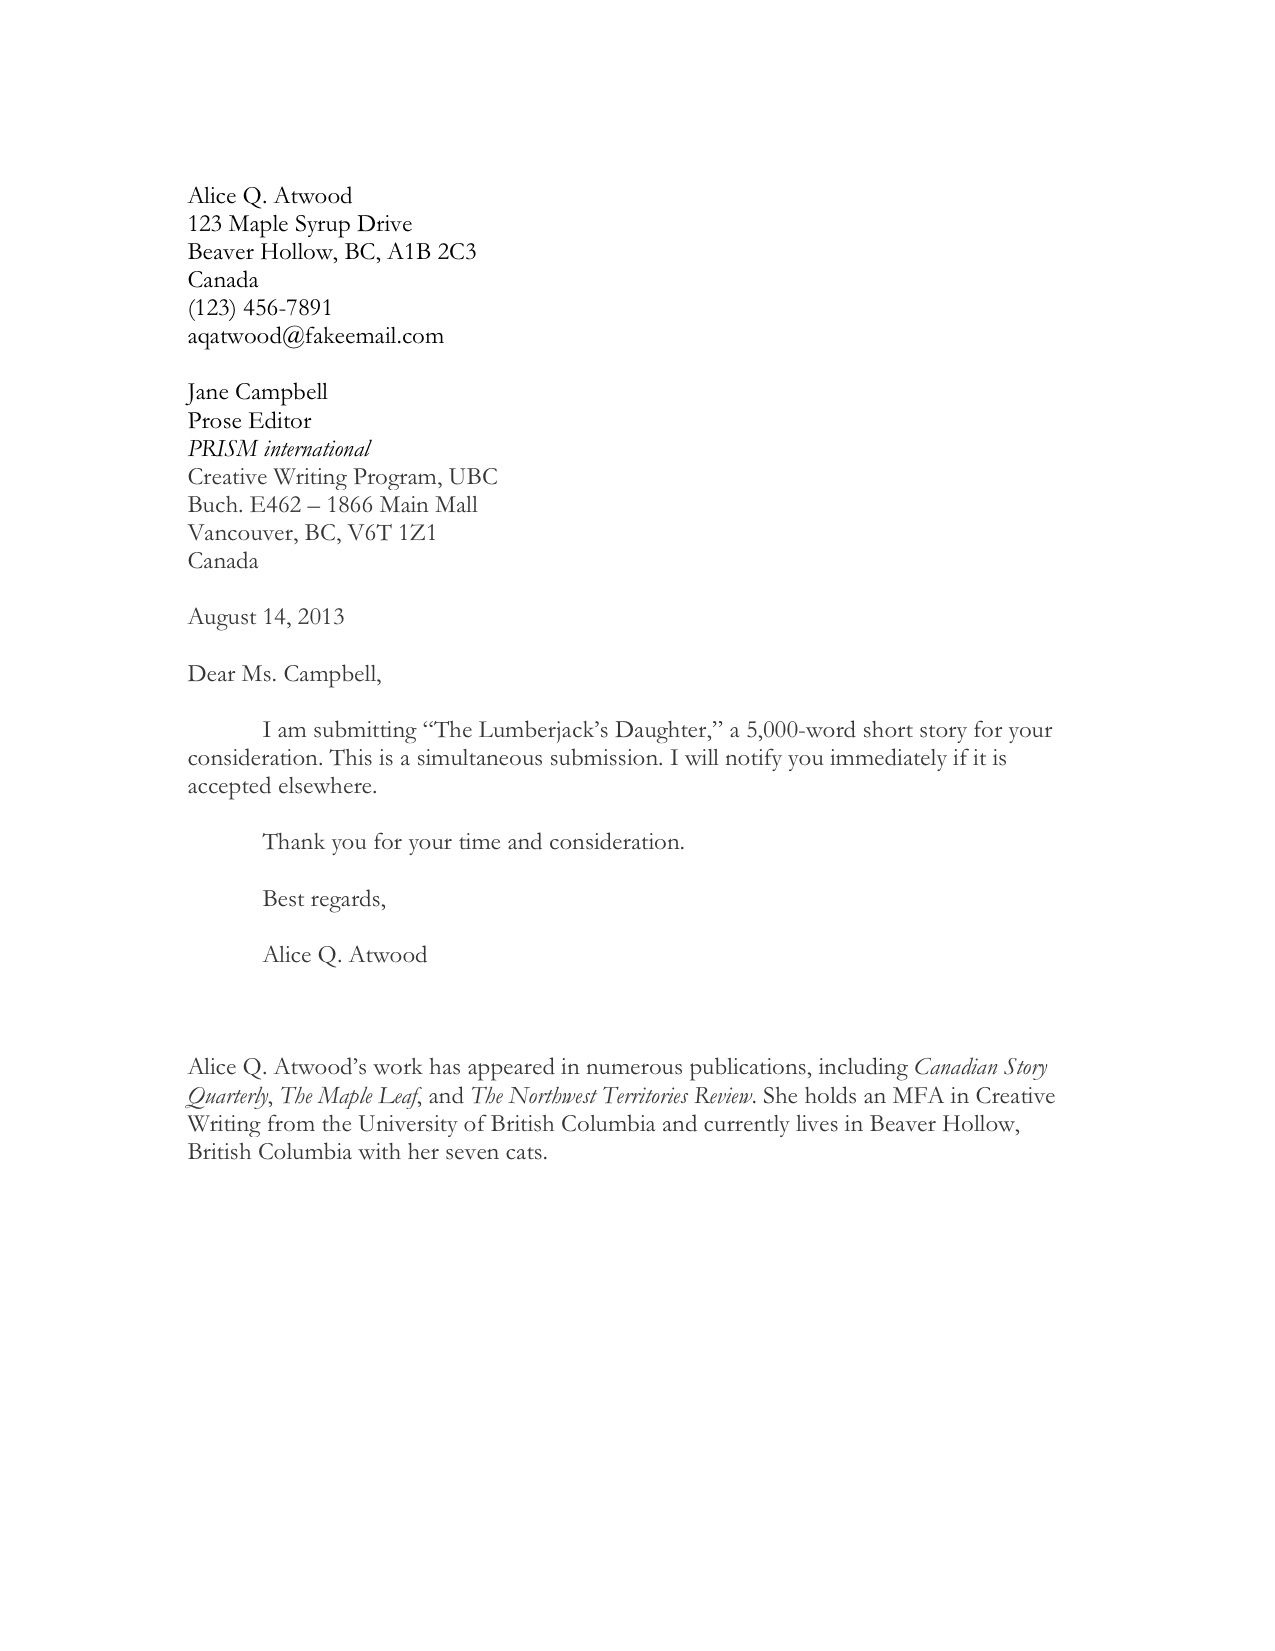 cover letter example prism international cover letter example - Resume Of Cover Letter Example